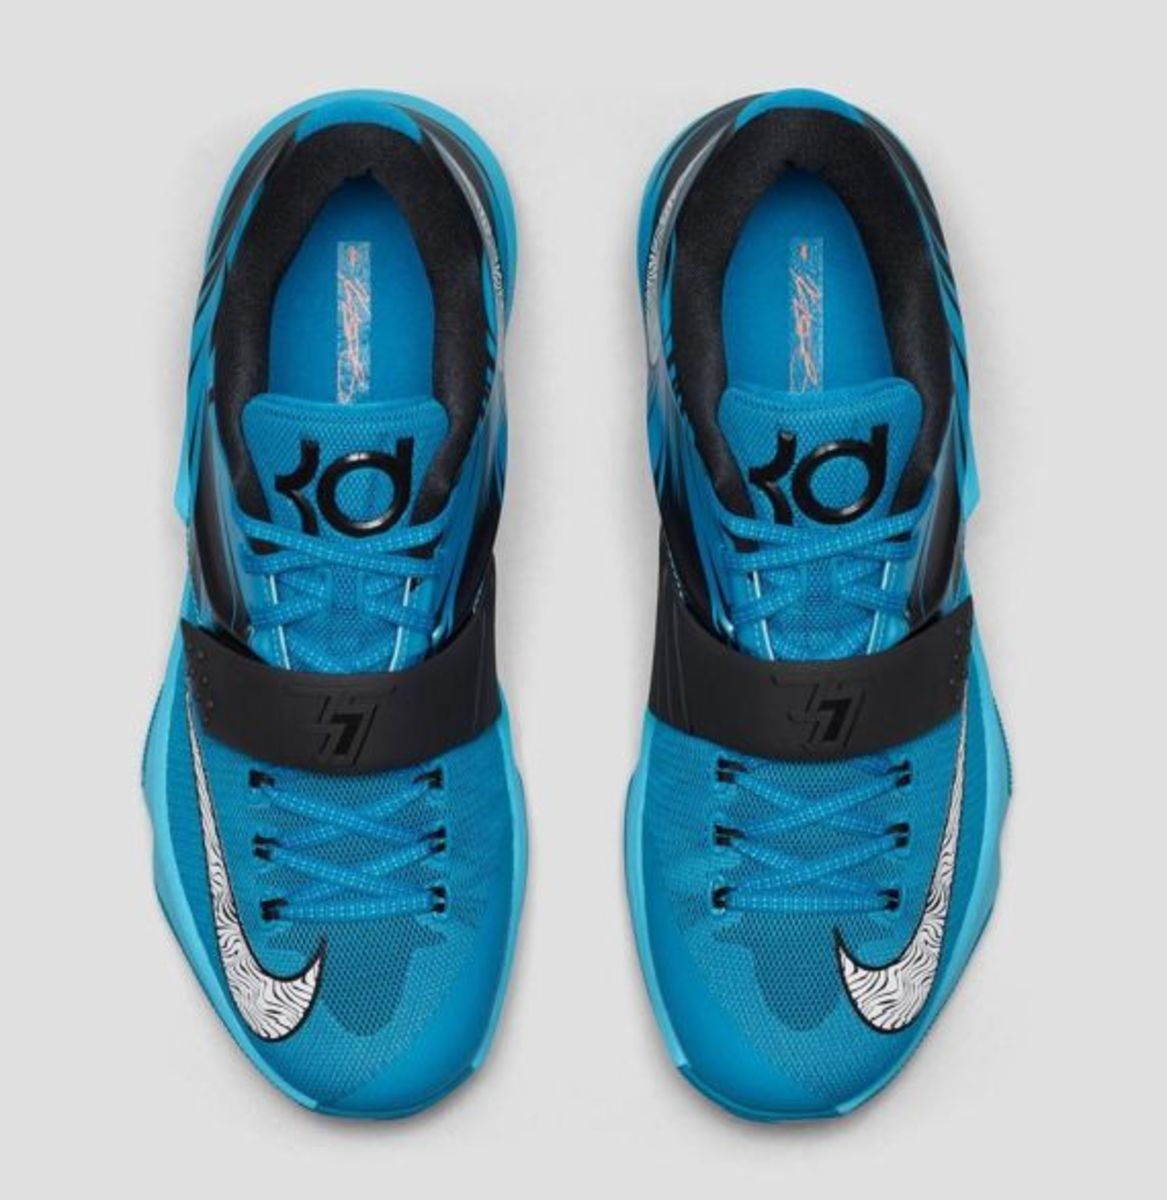 nike-kd-7-lacquer-blue-03